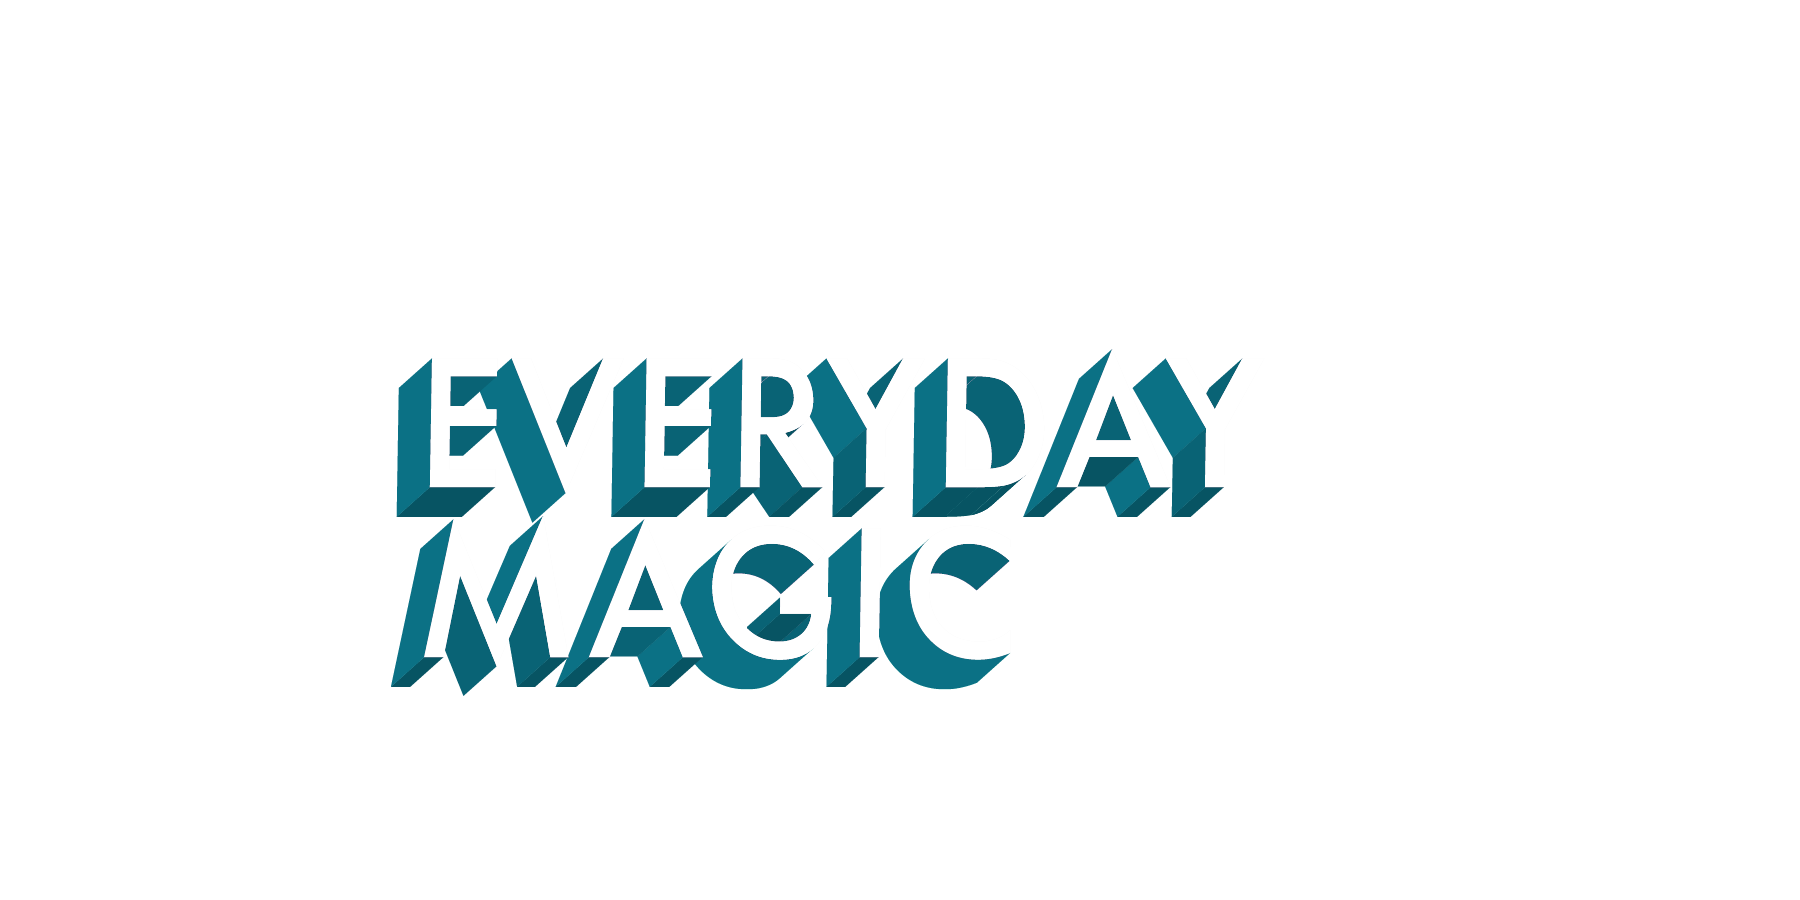 EverydayMagicProject_Wordmark-01.png